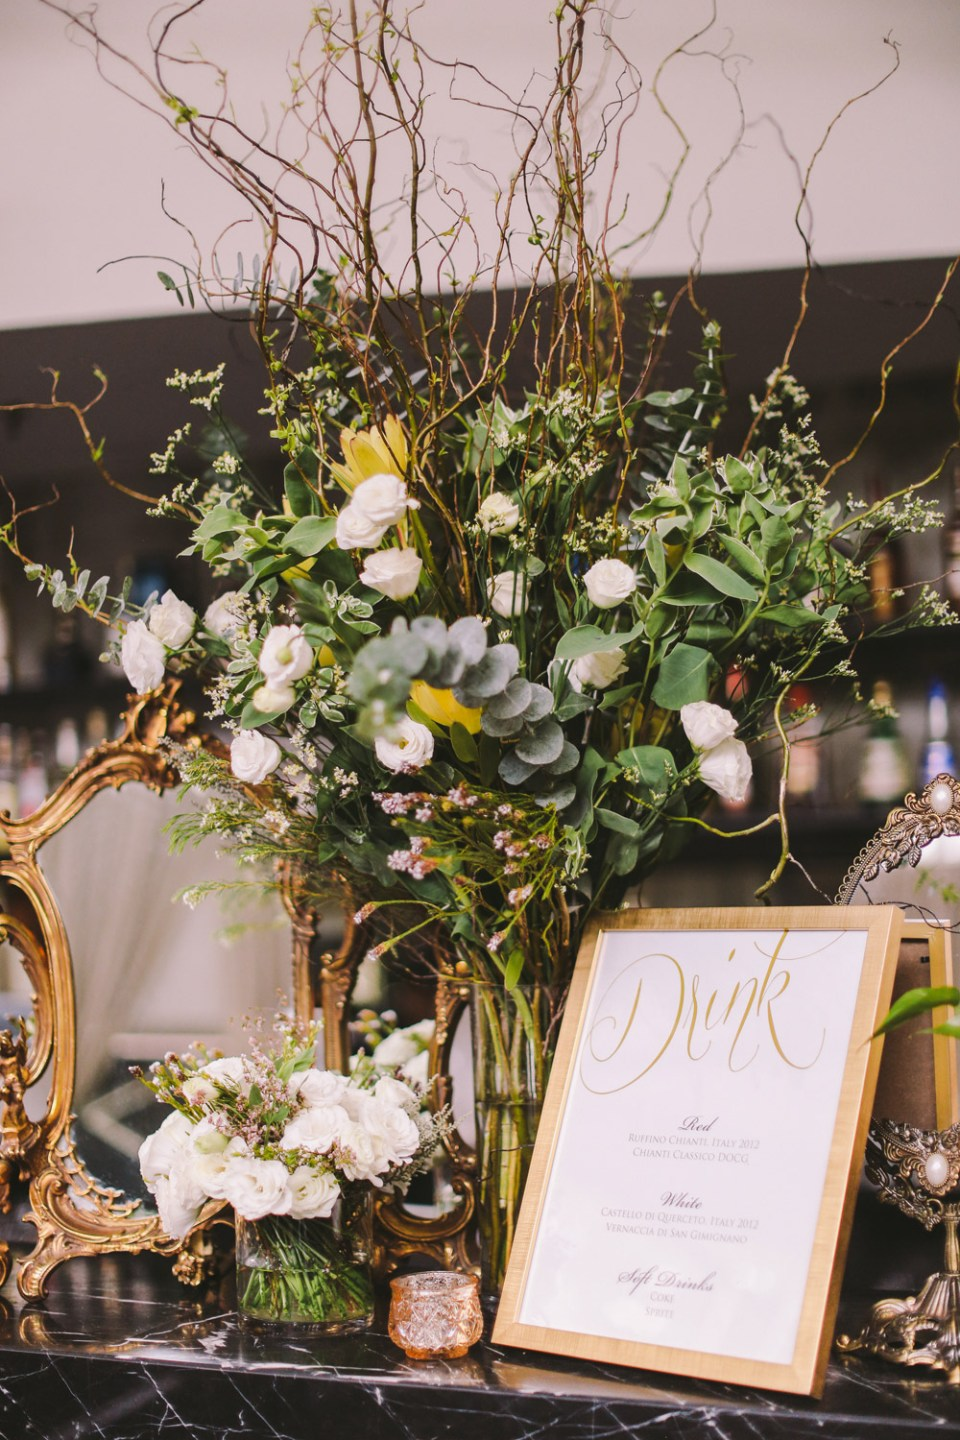 Styling by Mint Events and Soirees. Jenny Sun Photography. www.theweddingnotebook.com